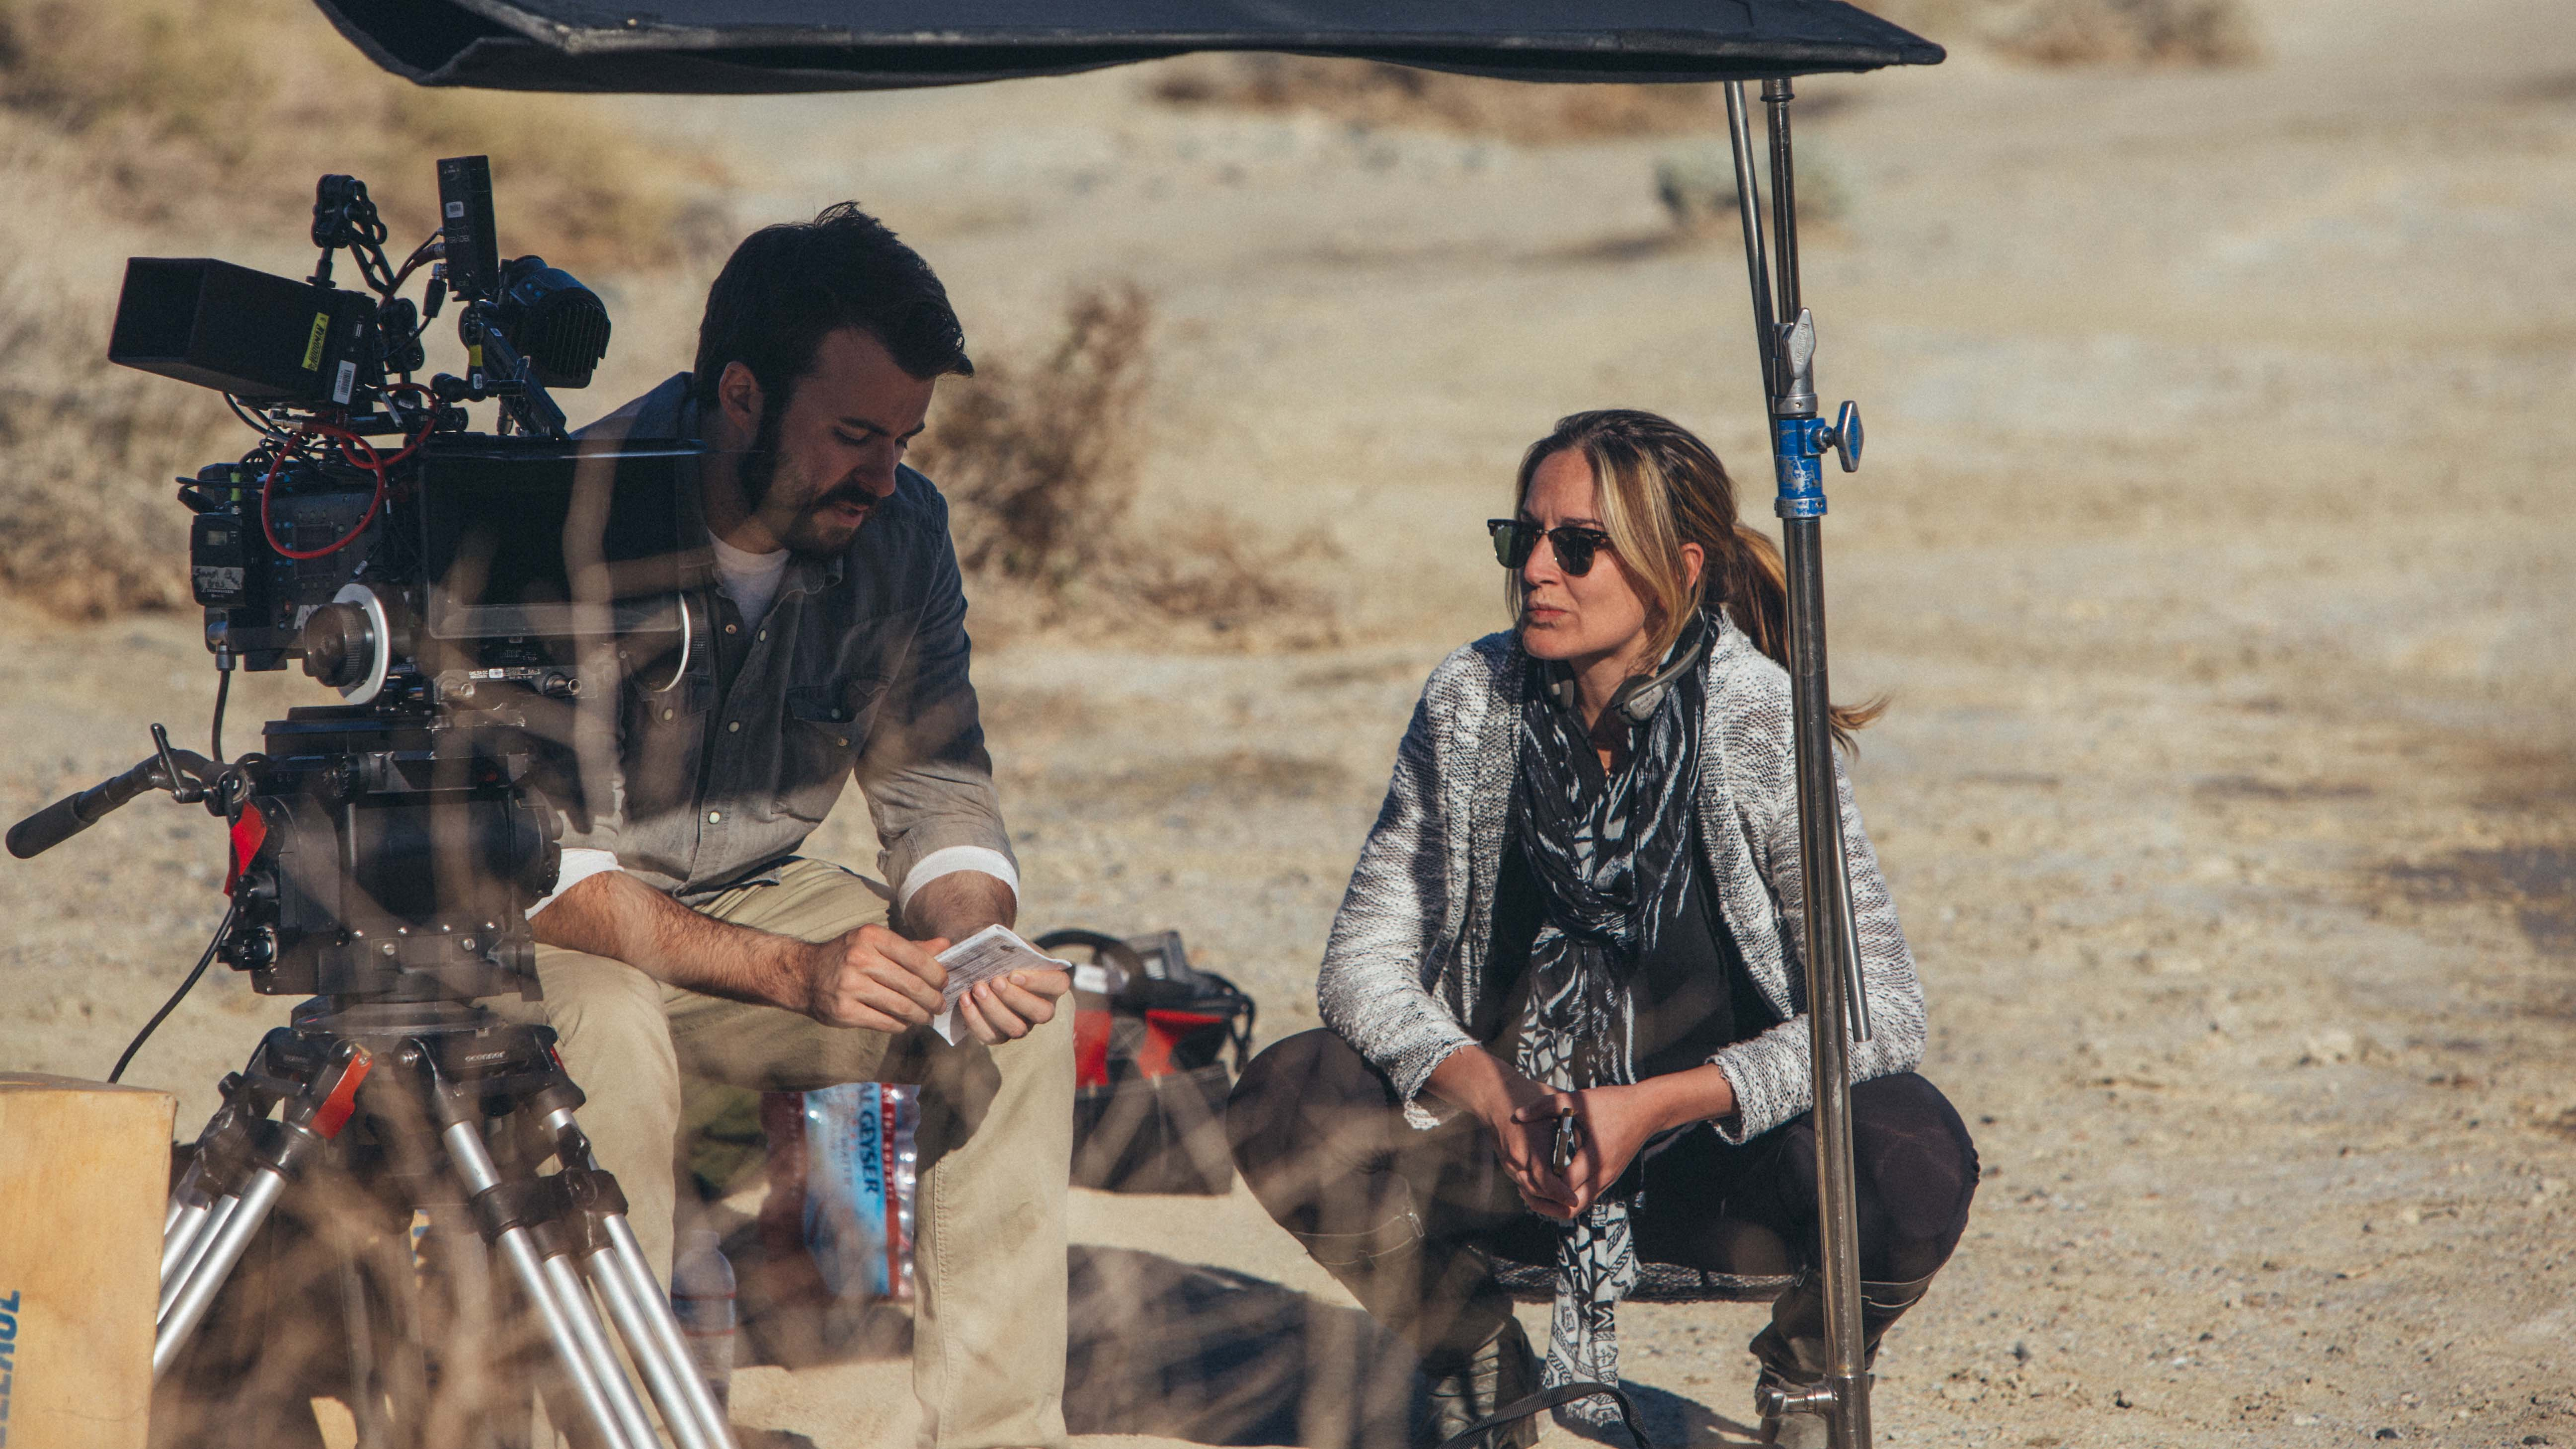 Director Ashley Avis working with cinematographer Garrett O'Brien on the set of Deserted